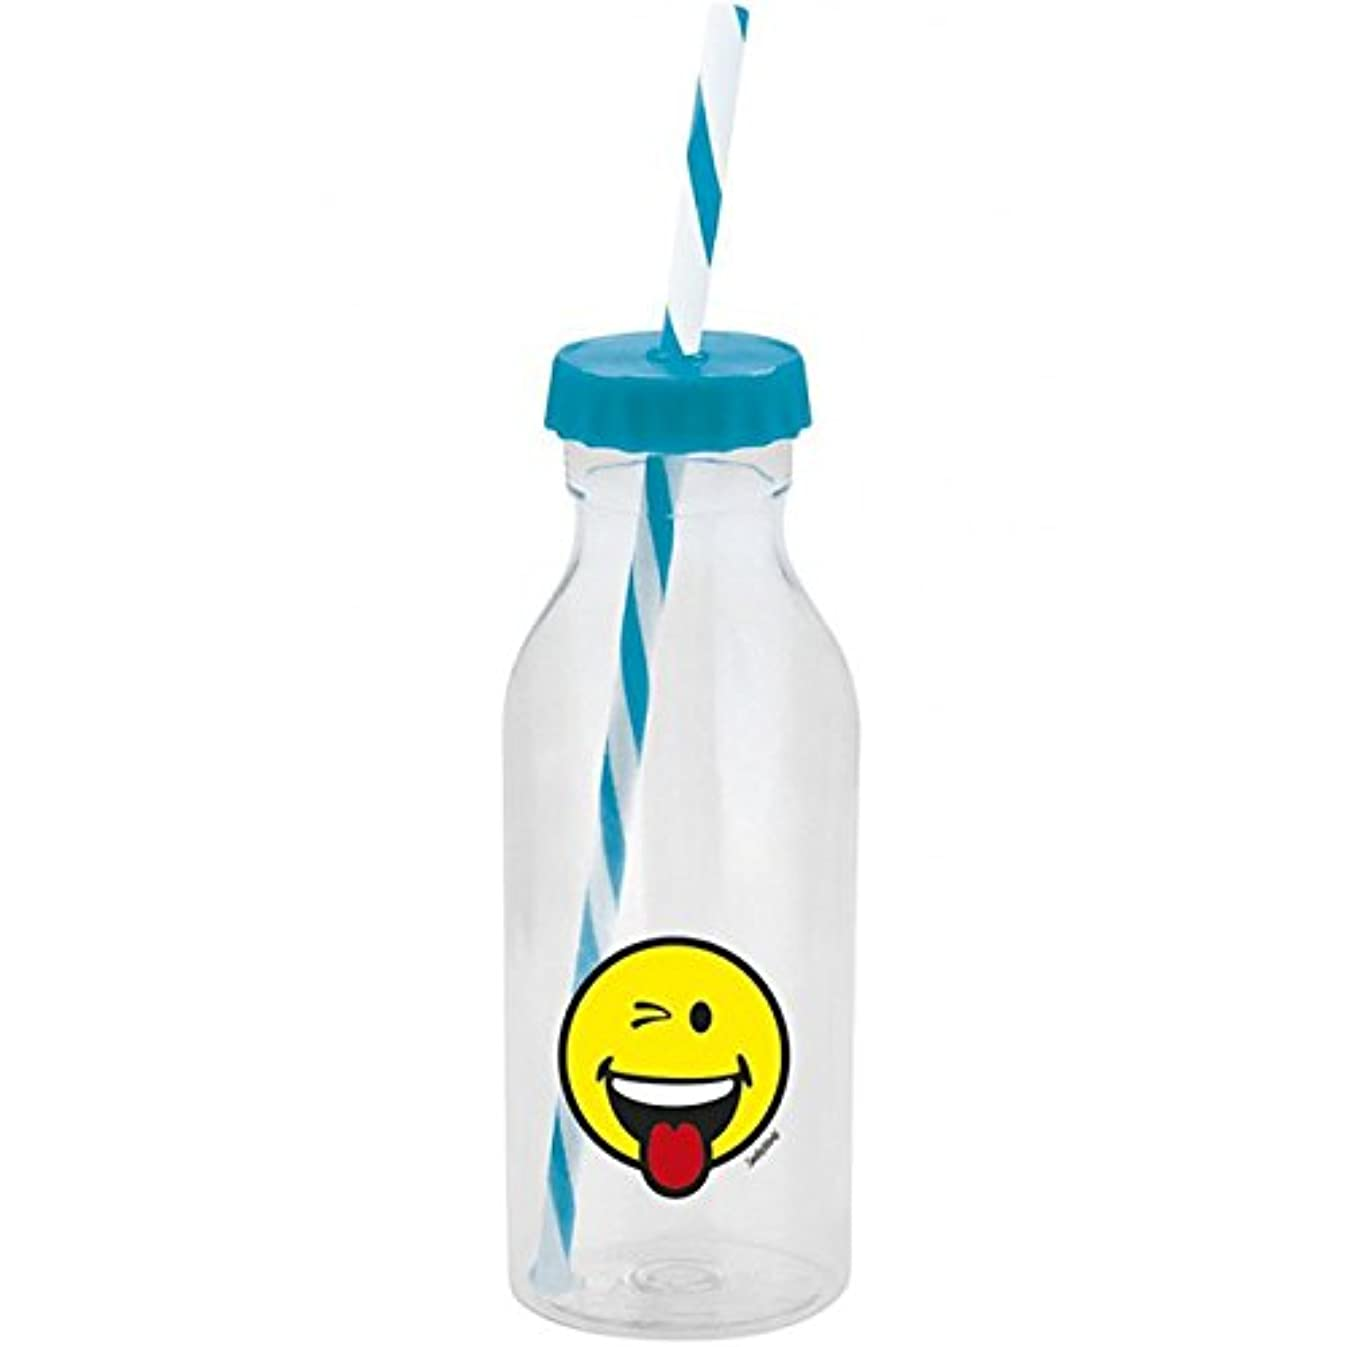 Zak Designs Drinking Bottle Smiley Wink 550ml in Clear/Aqua Blue, 15 x 8 x 8 cm